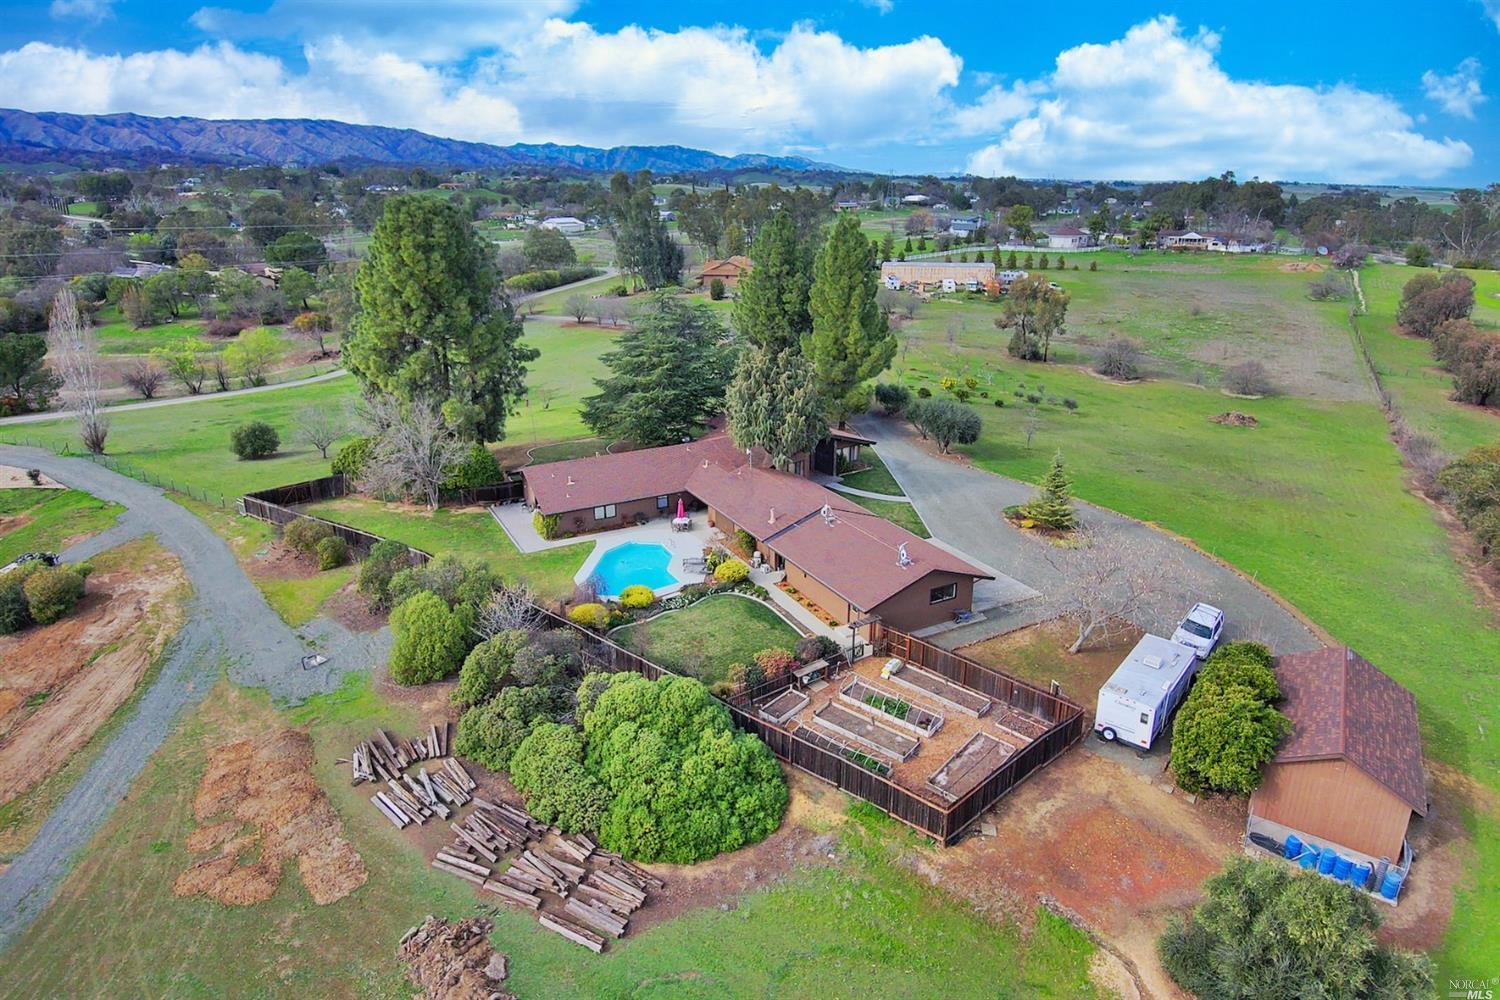 Coveted Vacaville country property with 5 usable acres showcasing a large custom single-story home, pool, 3-car garage, RV parking and workshop with wine cellar! Enter tree-lined driveway to enjoy panoramic views of the hills and orchard comprised of fruit, olive and nut trees. Rich land and fenced high-producing garden have private well irrigation. Entry welcomes with brick porch and double doors opening to the exposed wood beam vaulted ceilings and epic views through many large windows. Family/dining room with stone fireplace and sliding glass door. Kitchen with newly installed island cooktop, double oven, granite, backsplash, stainless steel appliances, pantry cabinetry and dining area. Den, ideal for home office and massive bonus room e